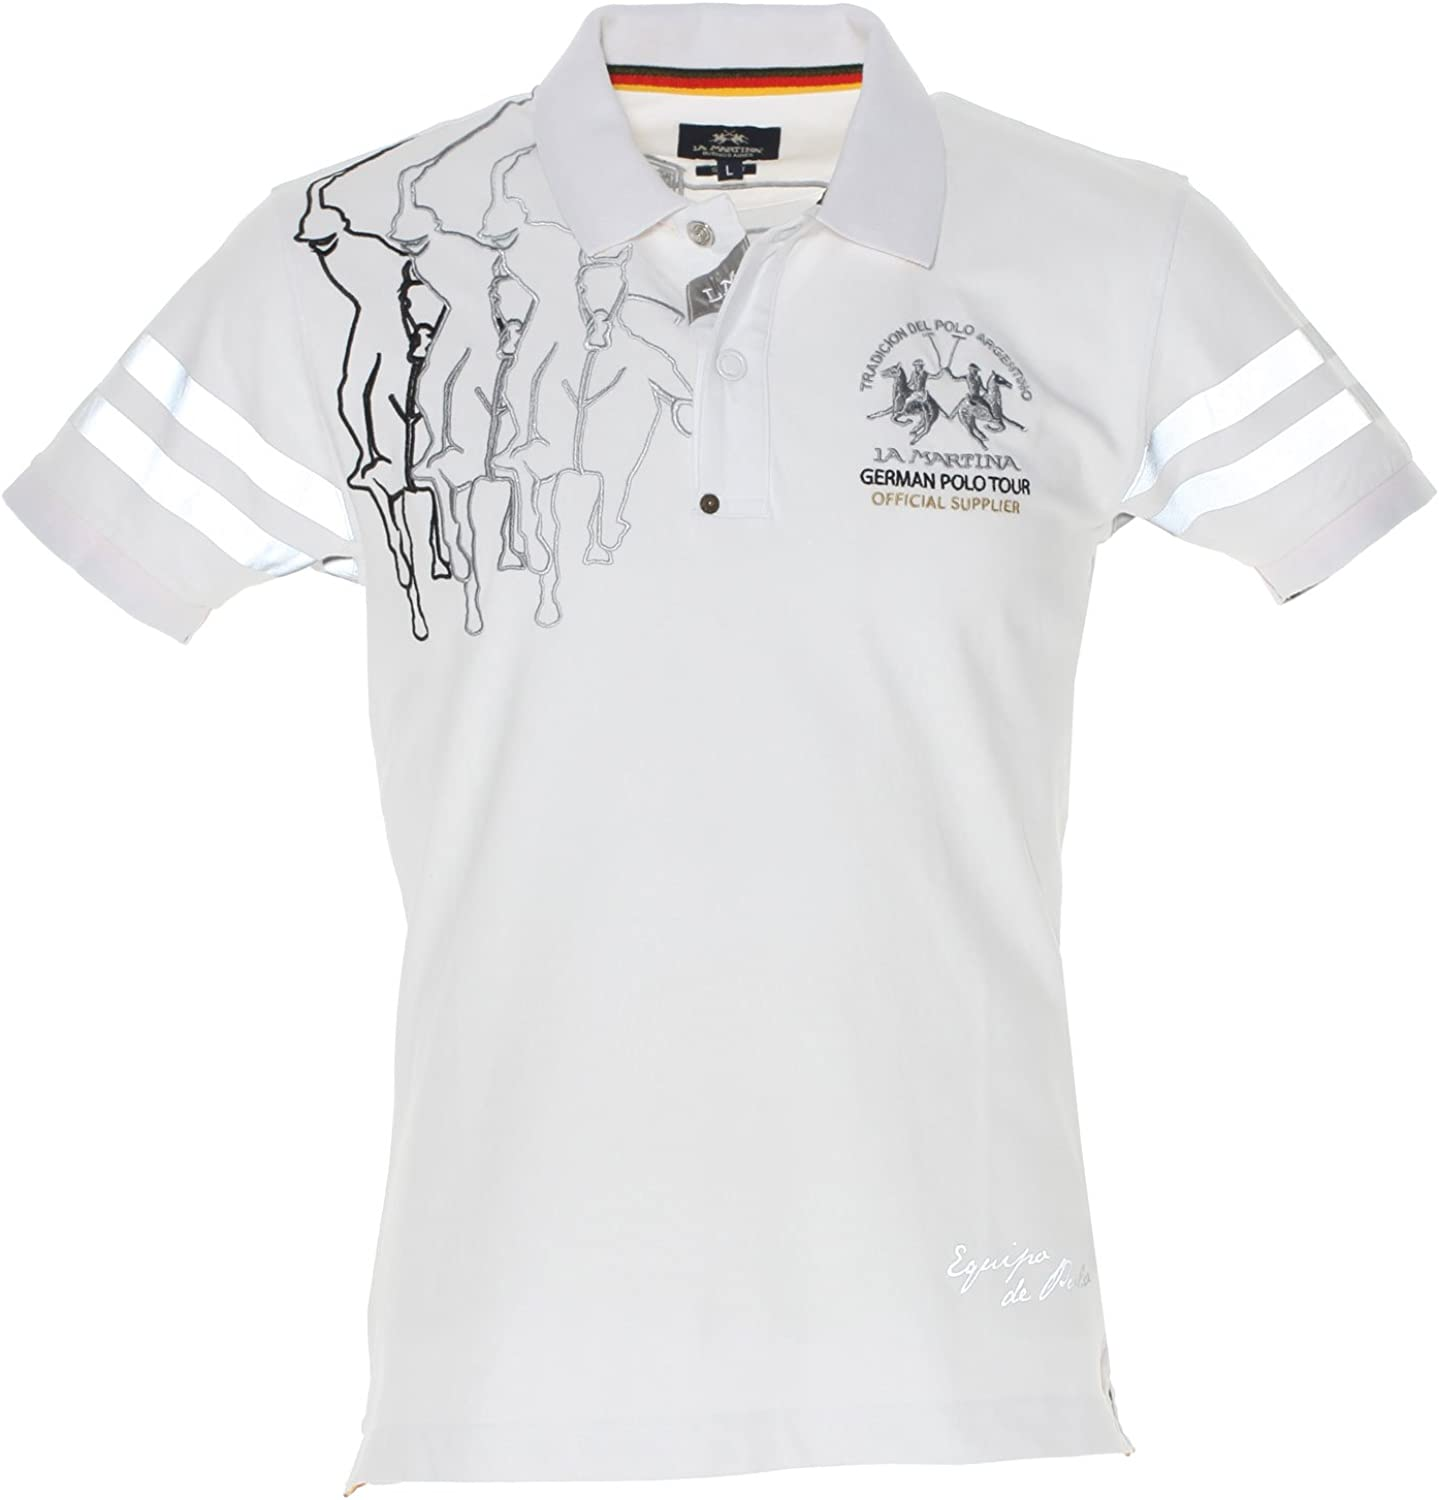 La Martina German Tour Polo Camisa, Blanco (00001 Optic White), L para Hombre: Amazon.es: Ropa y accesorios